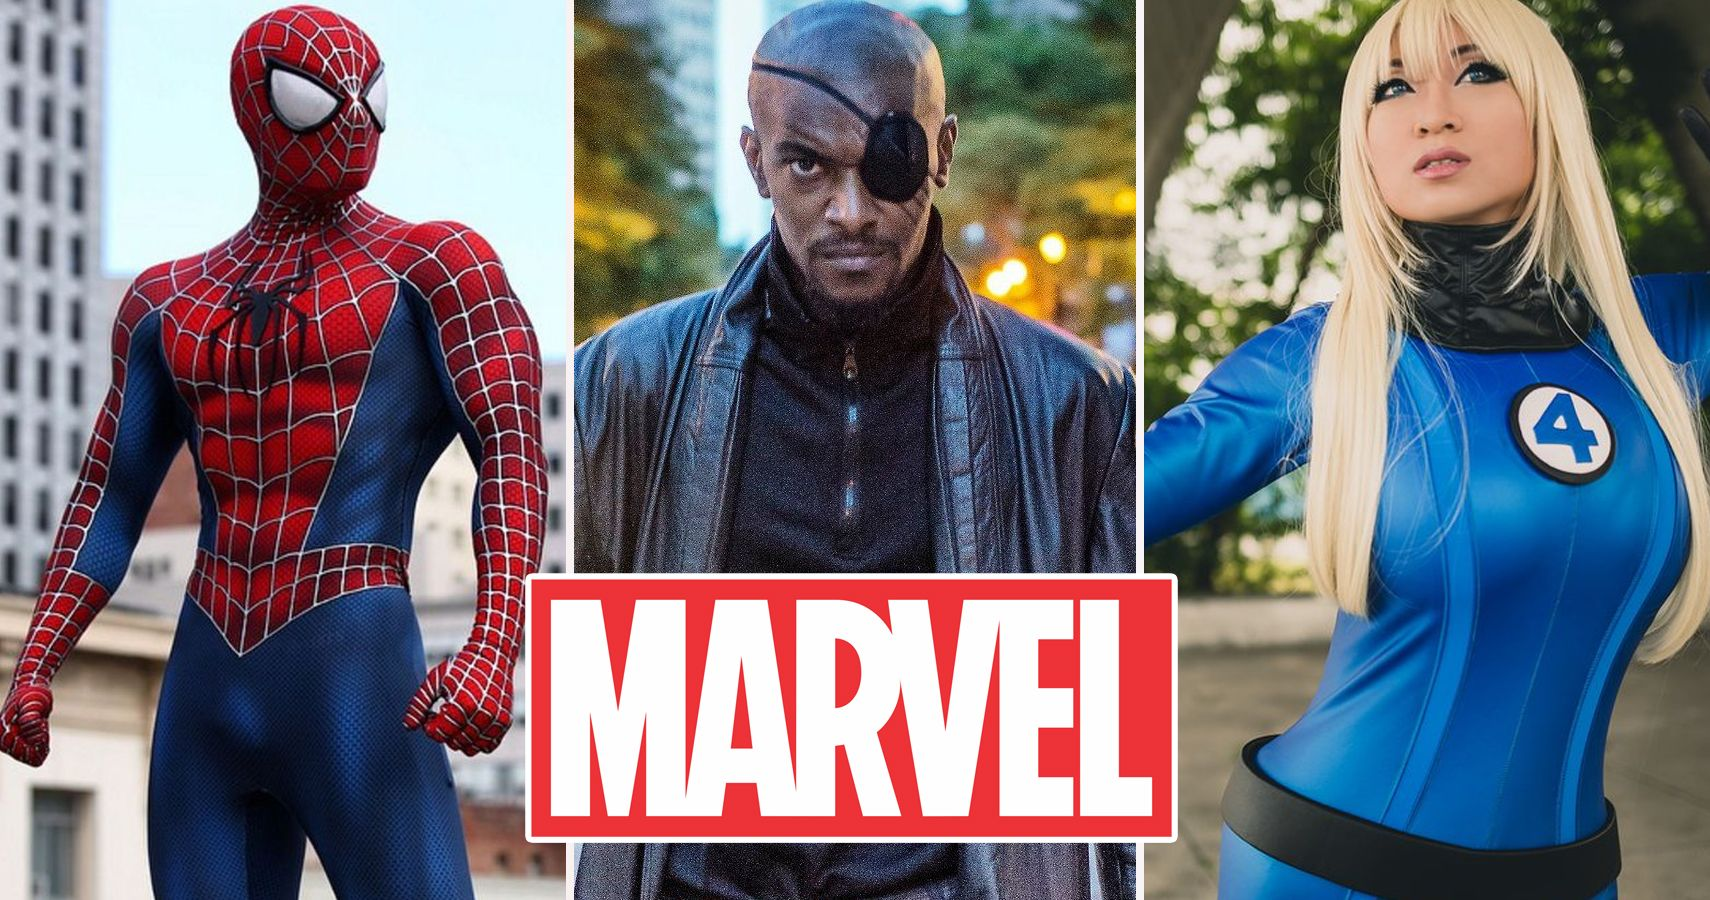 30 Marvel Character Cosplays That Are Even Better Than The Movies dd52c838799b